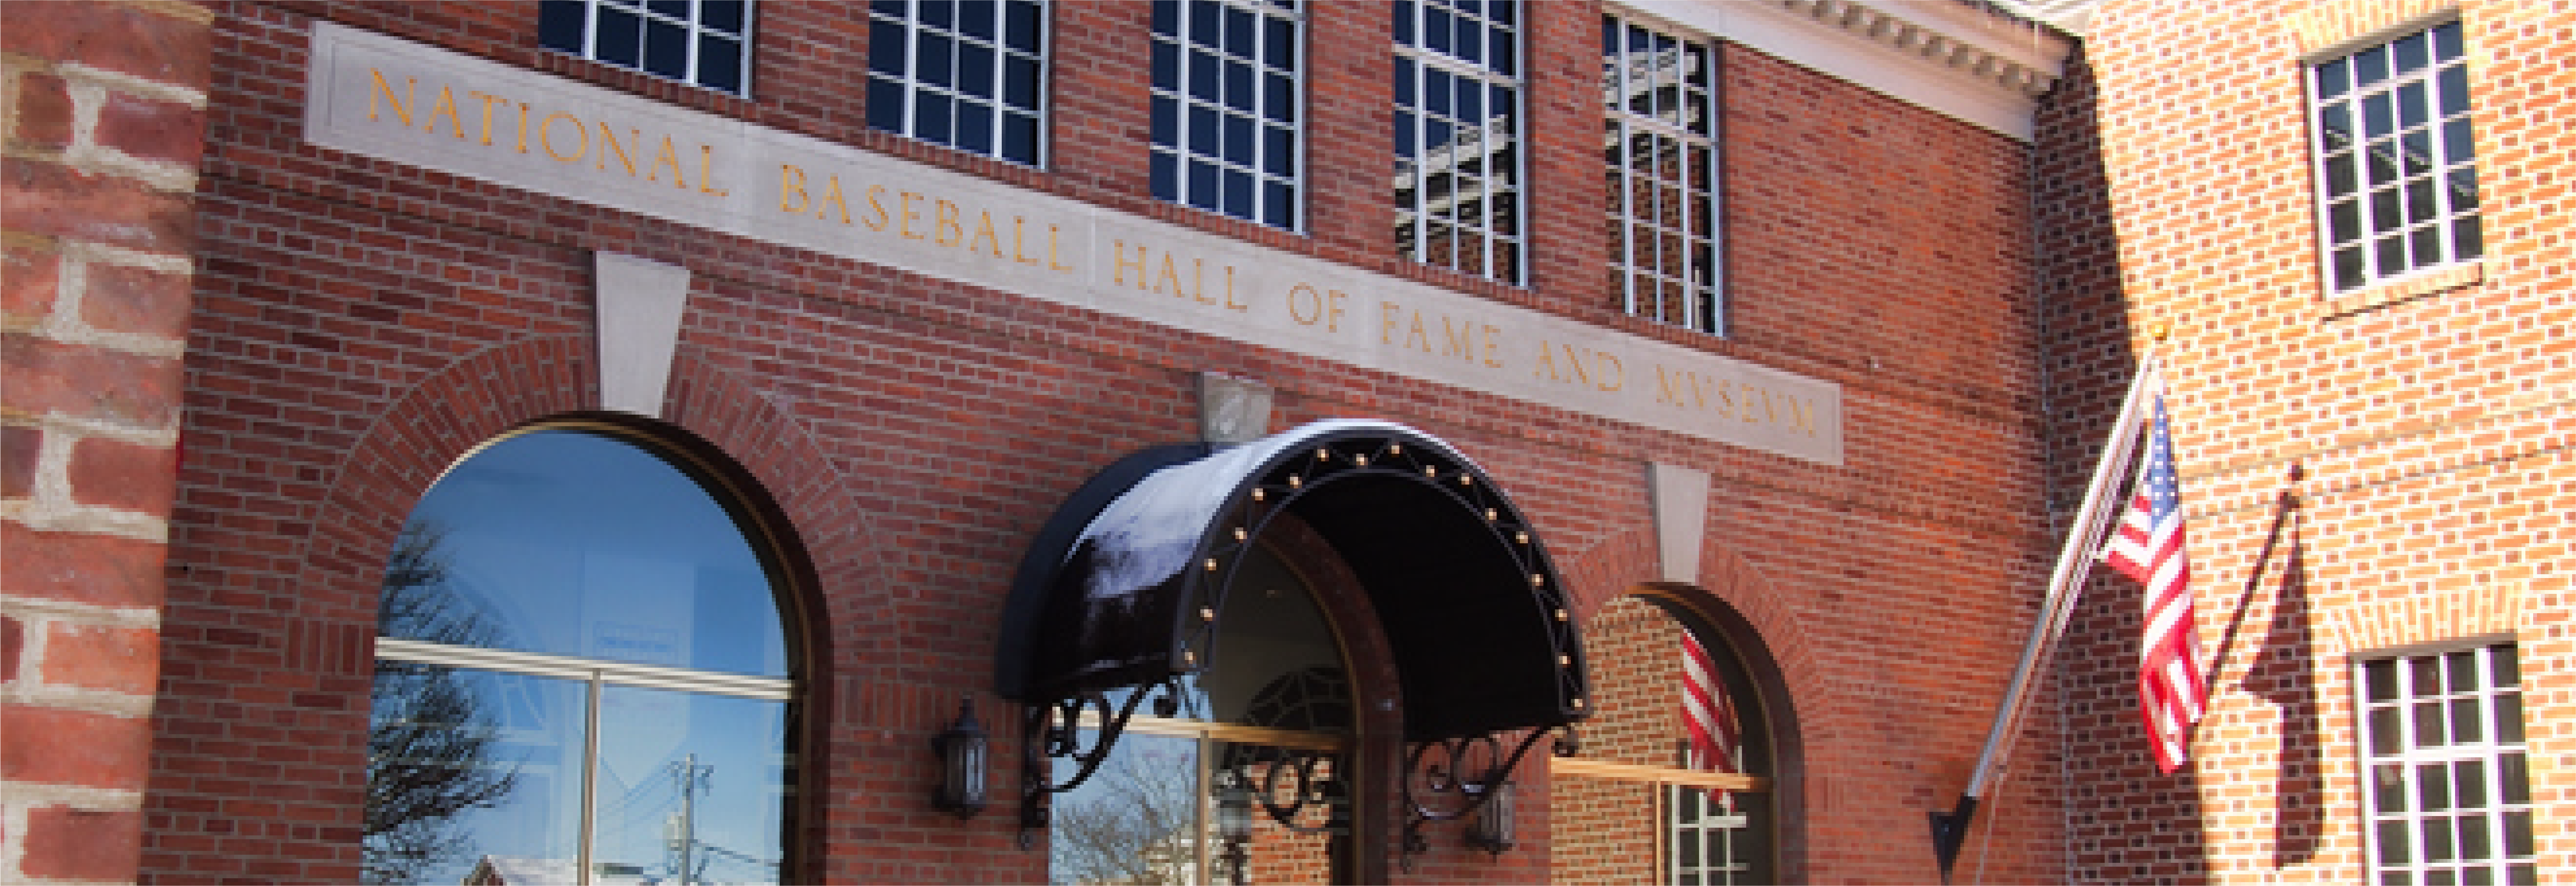 Baseball Hall of Fame Offer Free Admission For Military Personnel